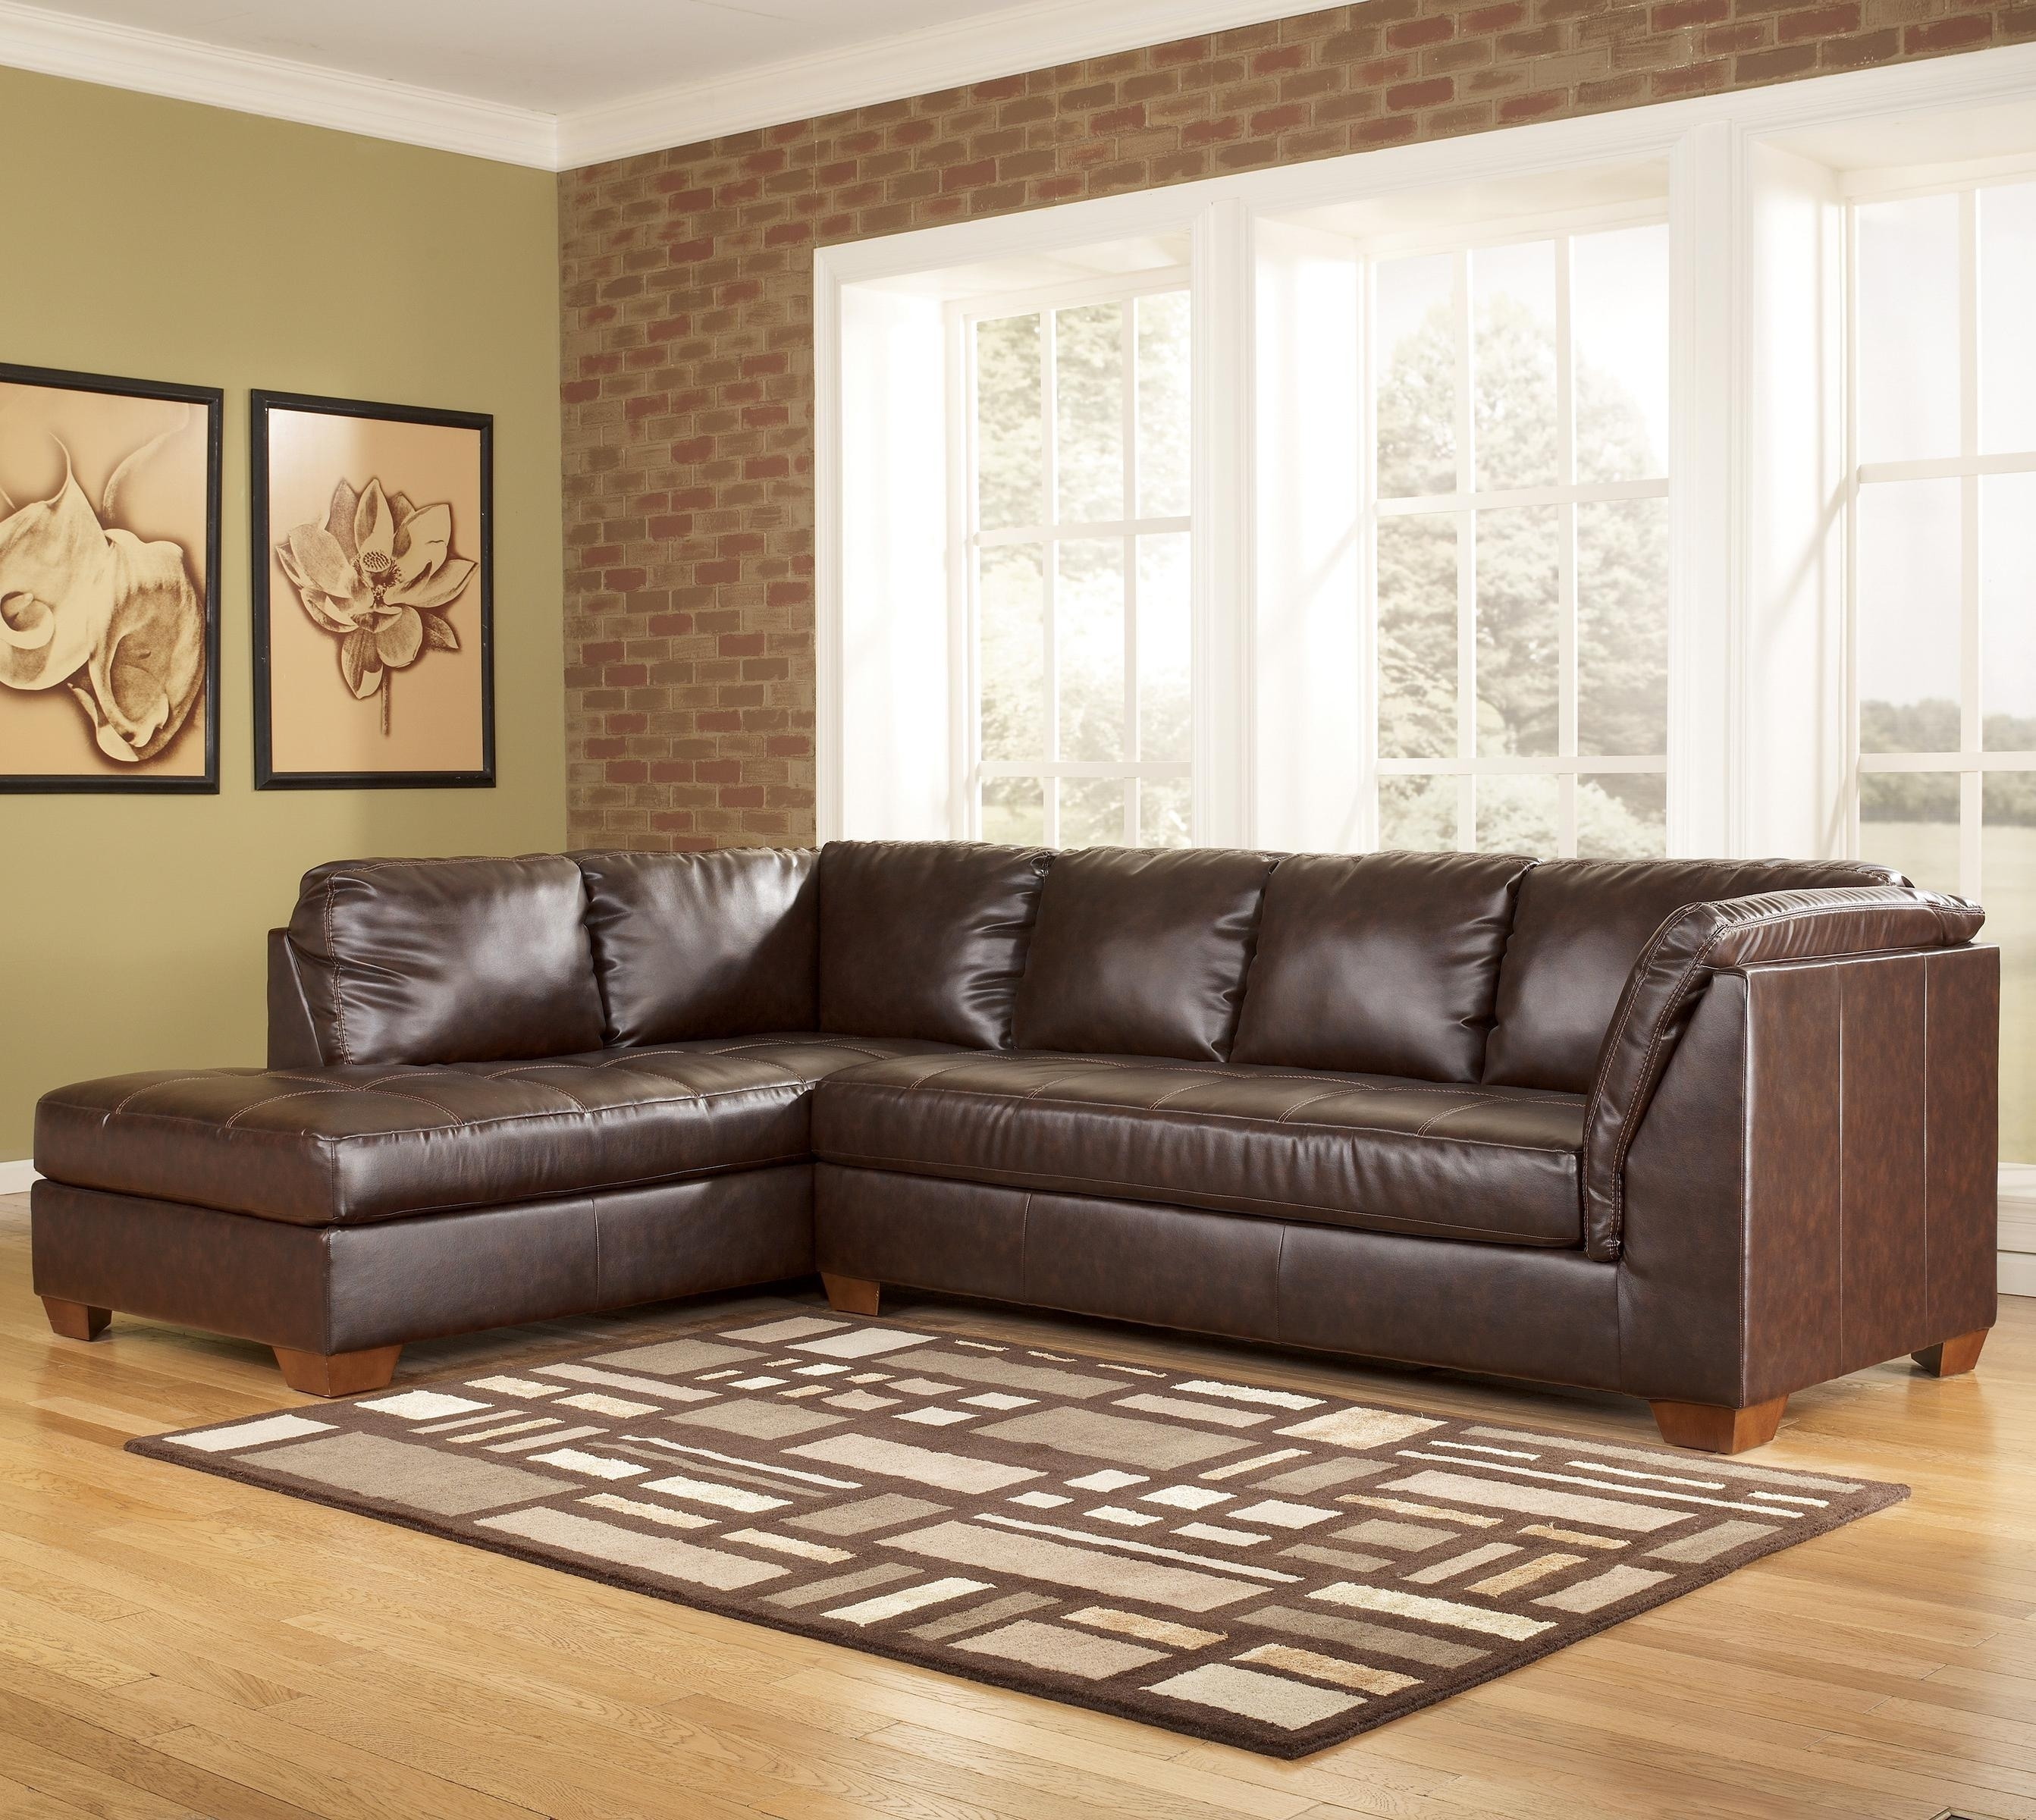 Signature Designashley Fairplay Durablend® Contemporary Regarding Jacksonville Nc Sectional Sofas (View 3 of 10)